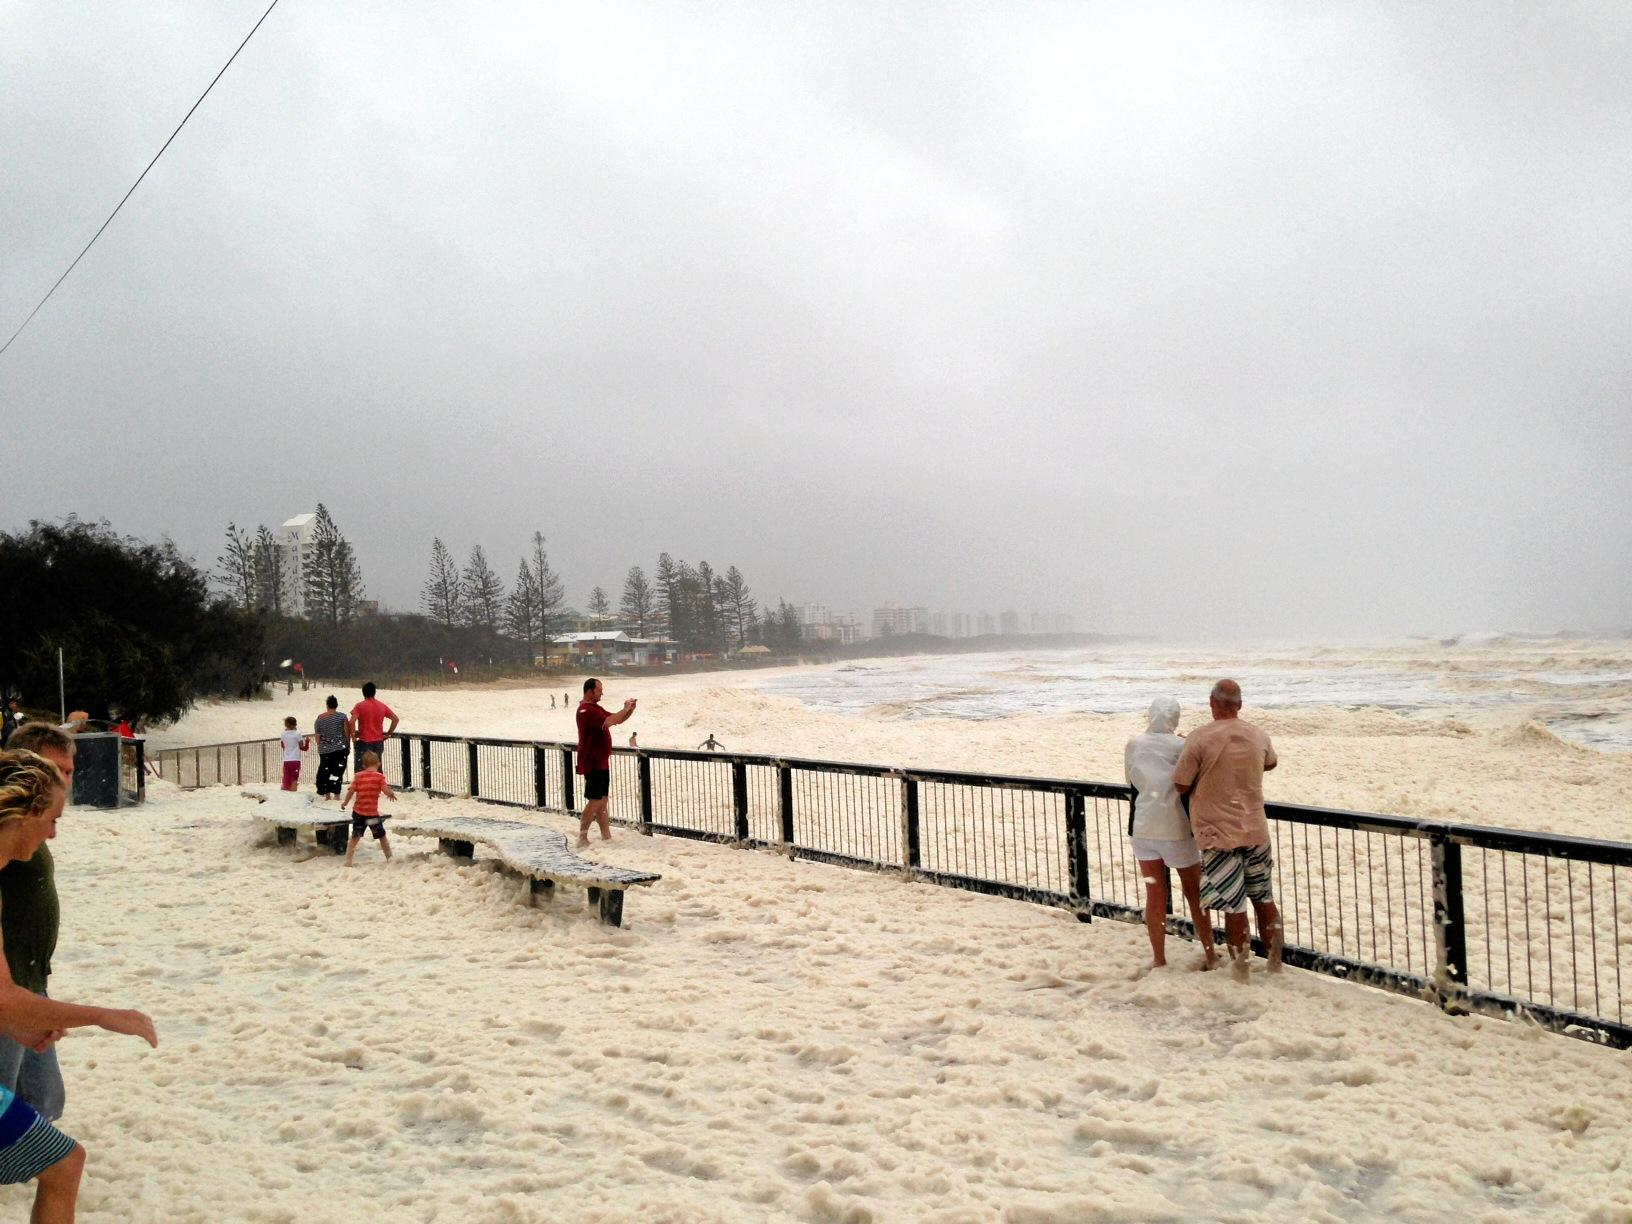 In 2013 ex-cyclone Oswald created damaging surf conditions and drove foam up onto the roadway at Alexandra Headland. The Bureau of Meteorology has forecast winds to 130 kmh this weekend from Tropical Cyclone Owen. Photo: Bridget Chenoweth